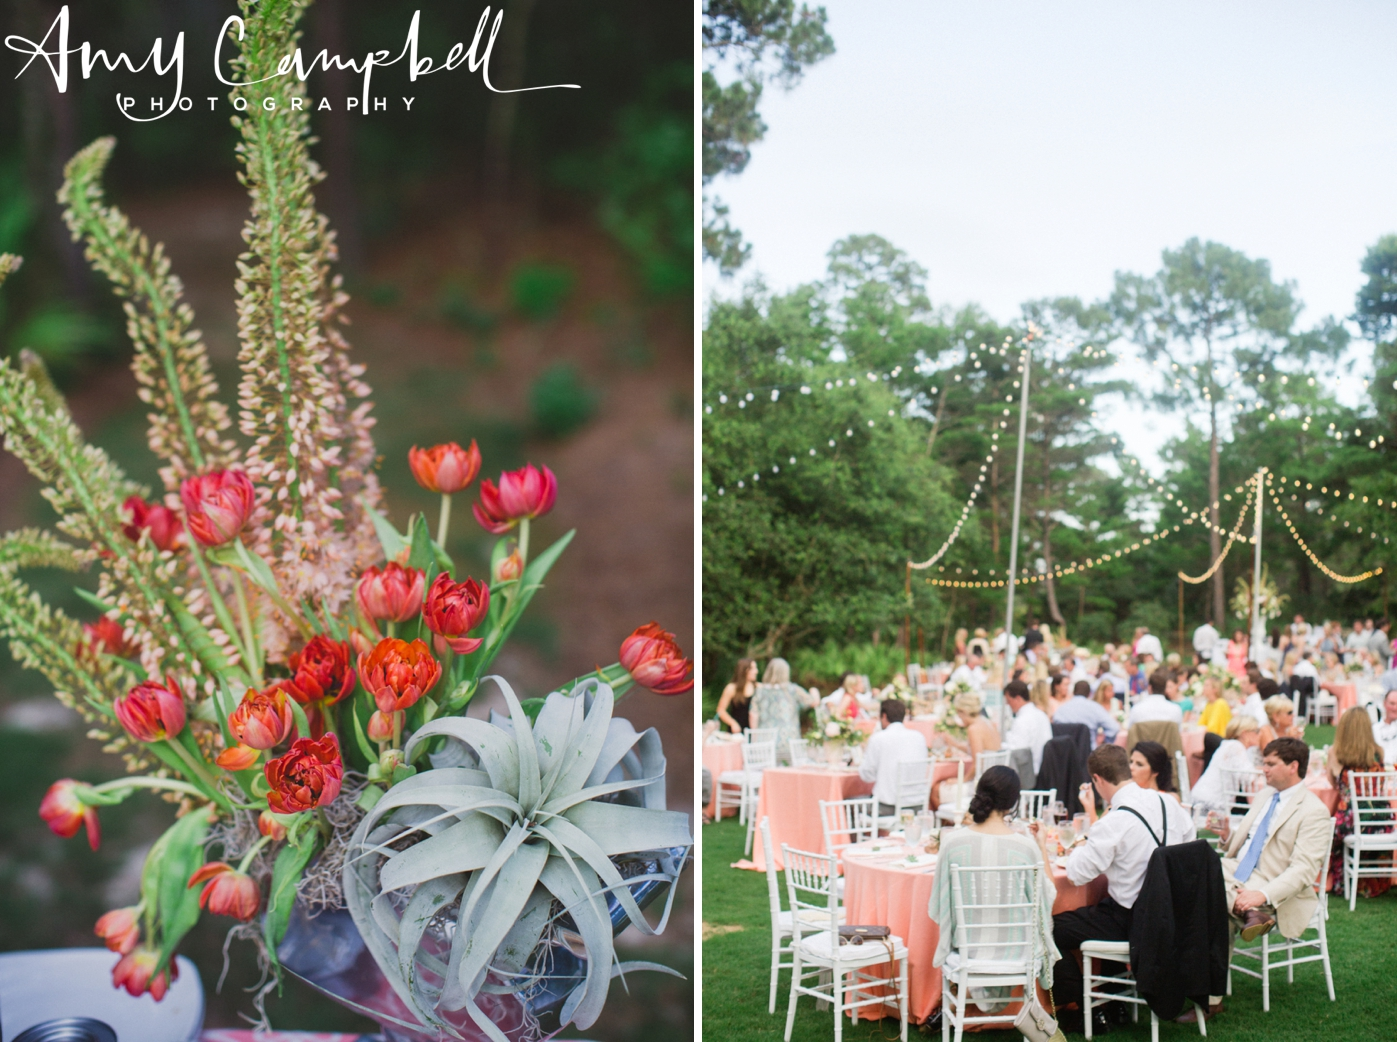 emilyreed_wed_blog_amycampbellphotography_0074.jpg